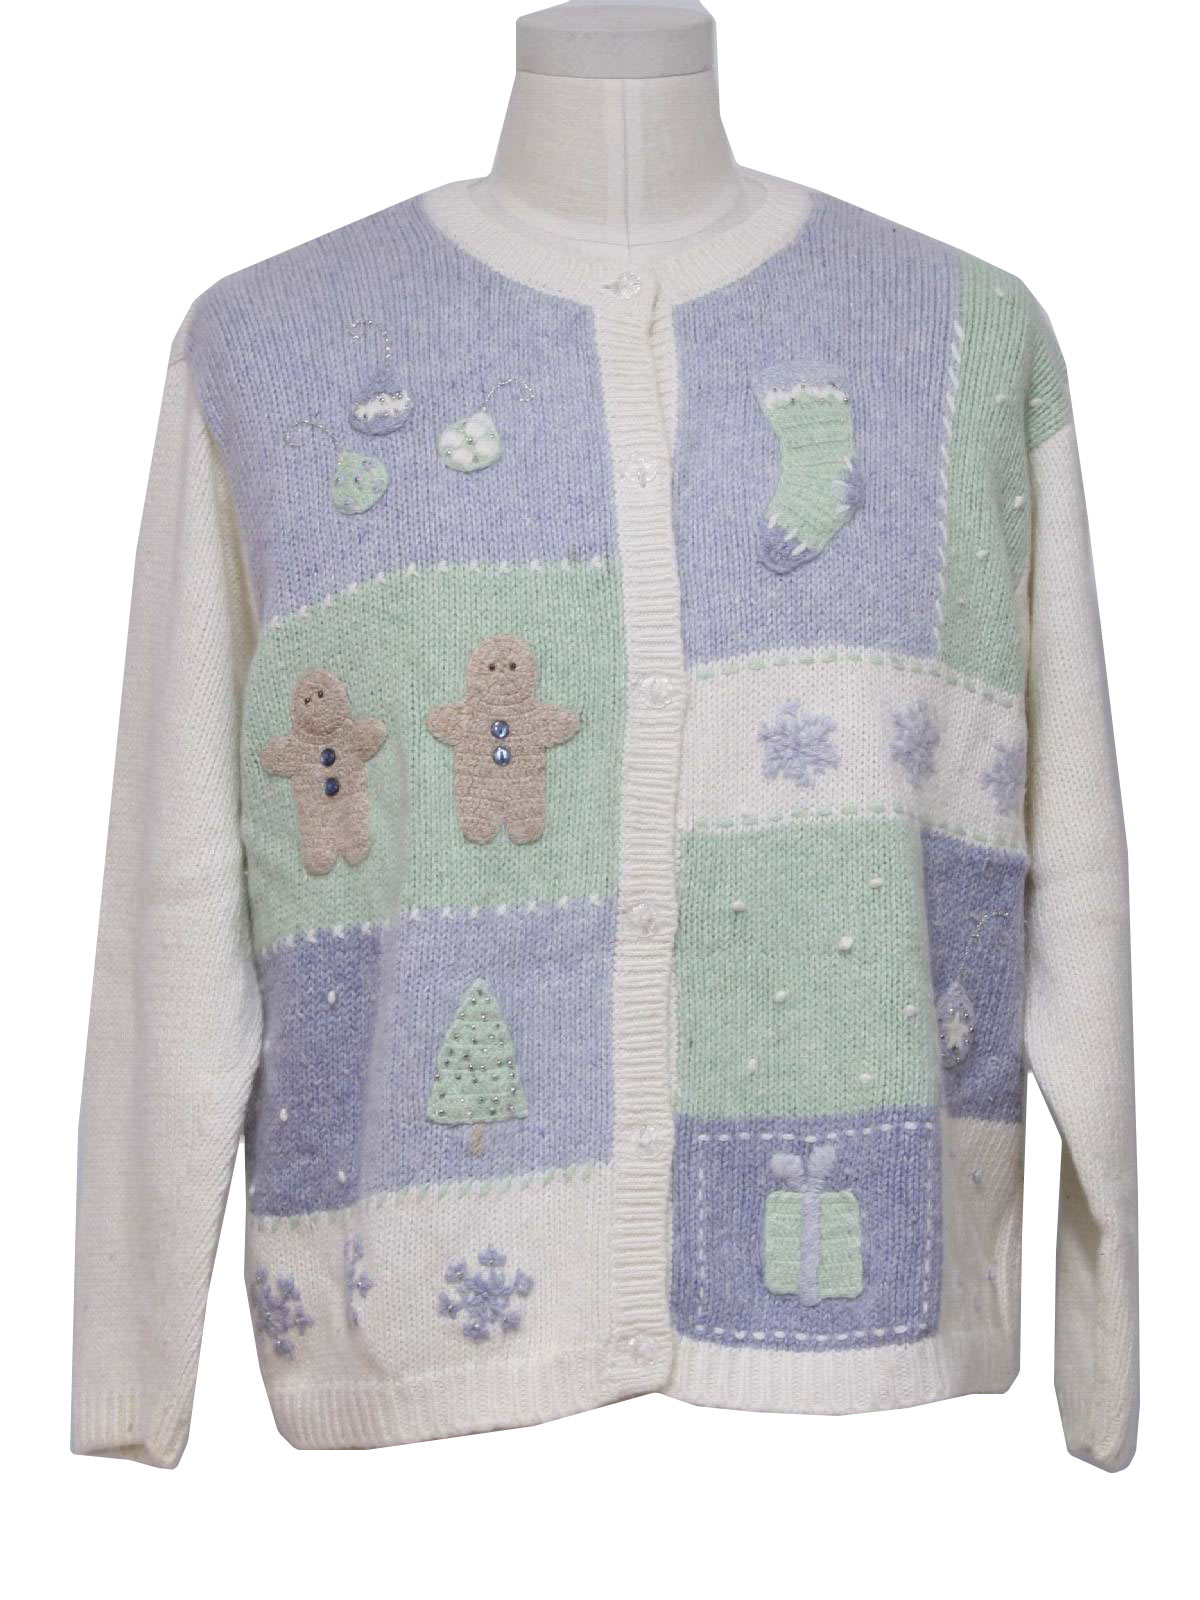 Womens Pastel Ugly Christmas Sweater: -Croft & Barrow- Womens off ...